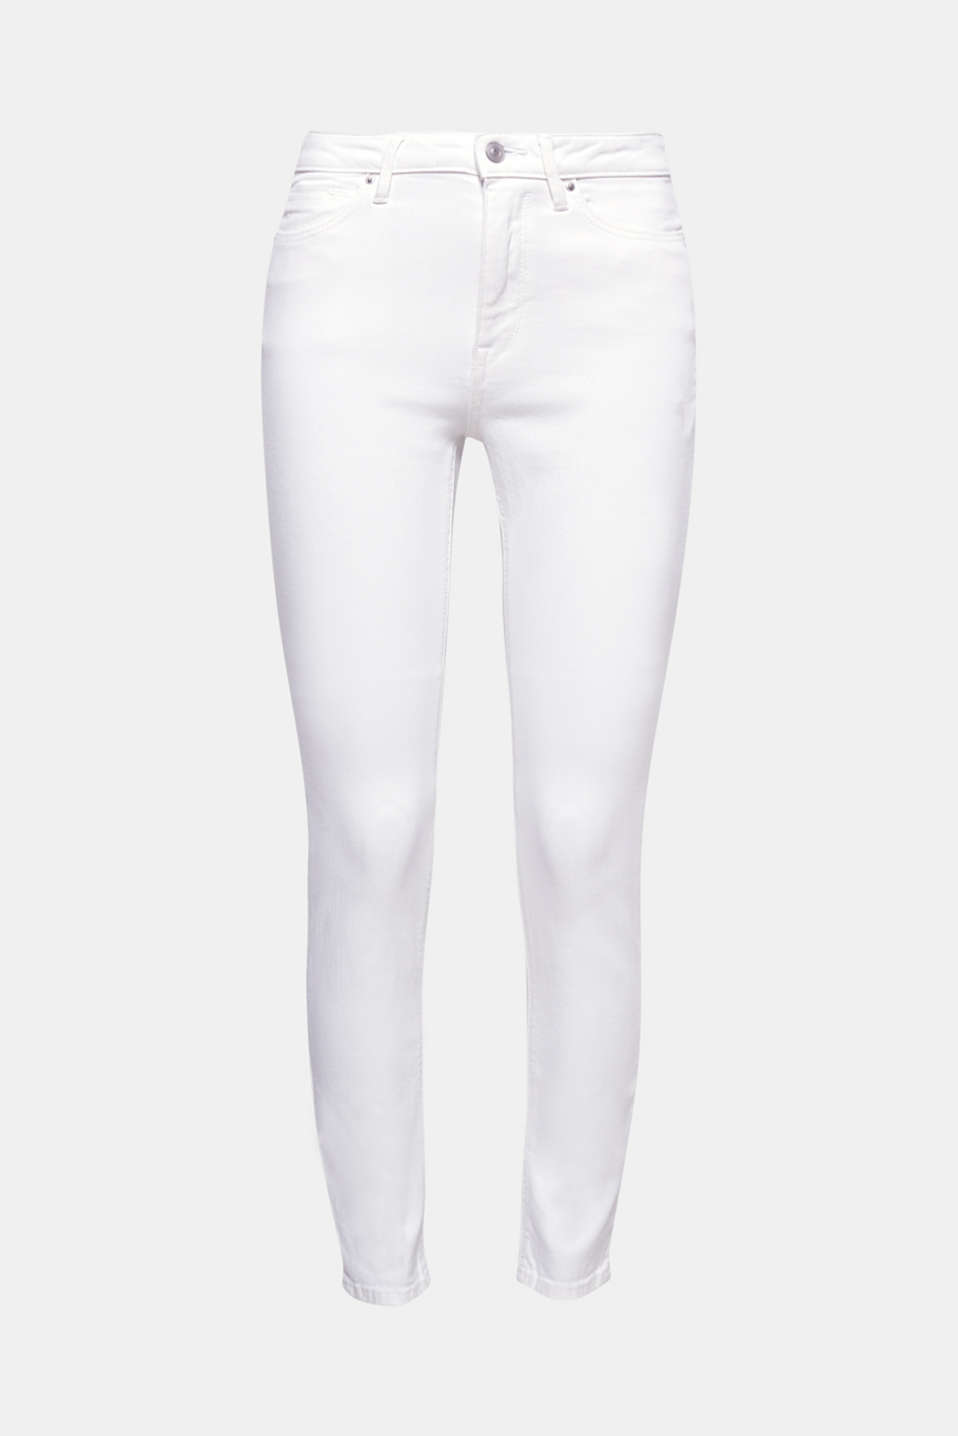 They instantly conjure up a fantastically fresh look:  pure white, high-rise cotton jeans with added stretch for comfort.